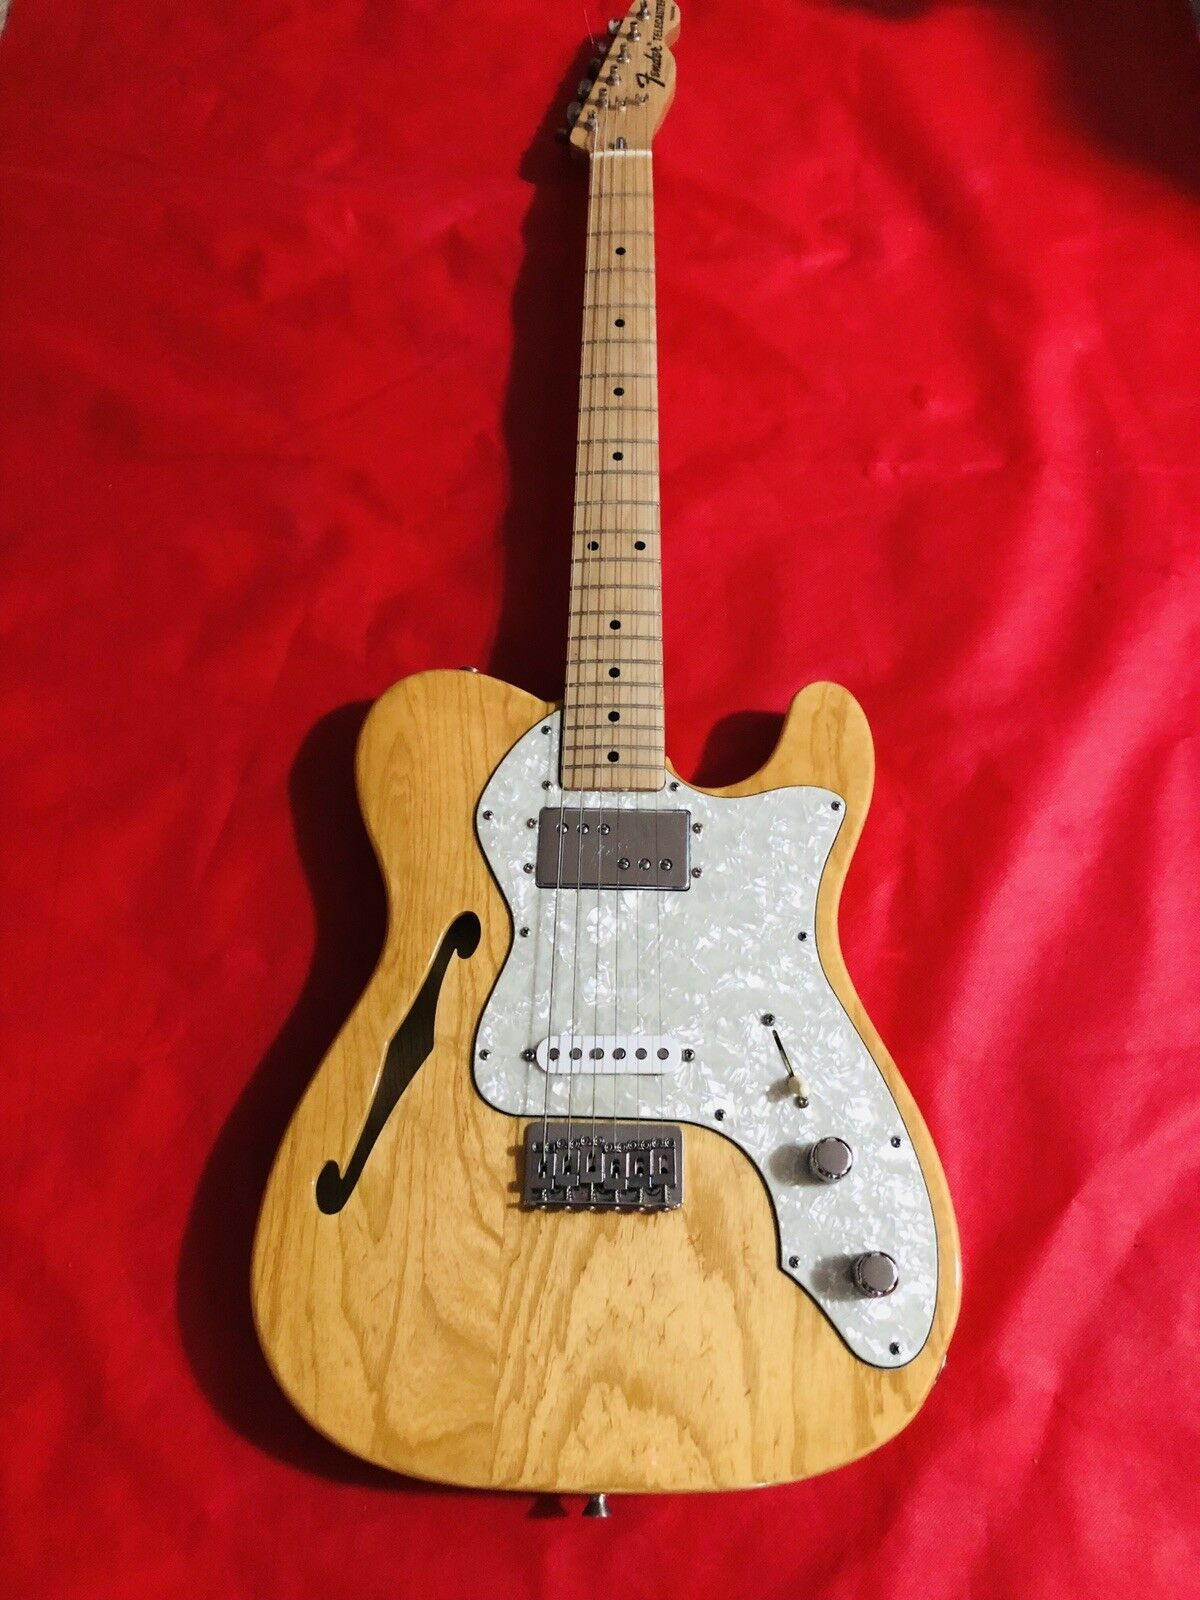 Fender Thin Line Telecaster Excellent Condition Crafted In Japan